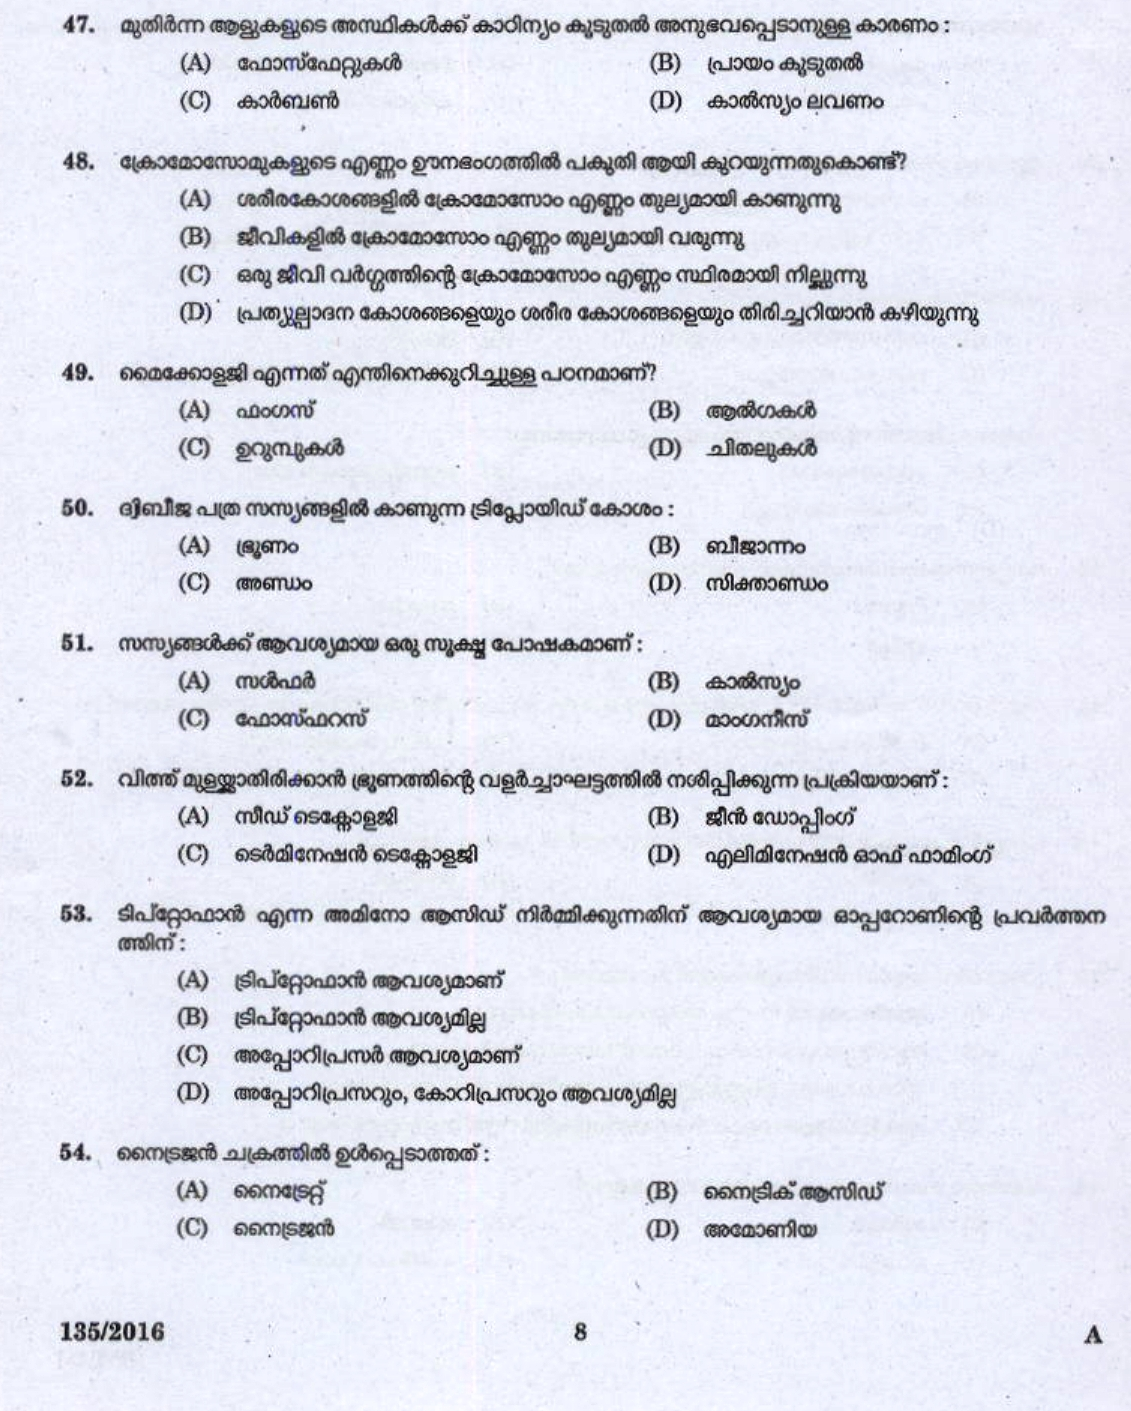 High School Assistant Natural Science (135/2016) Question Paper with Answer Key - Kerala PSC